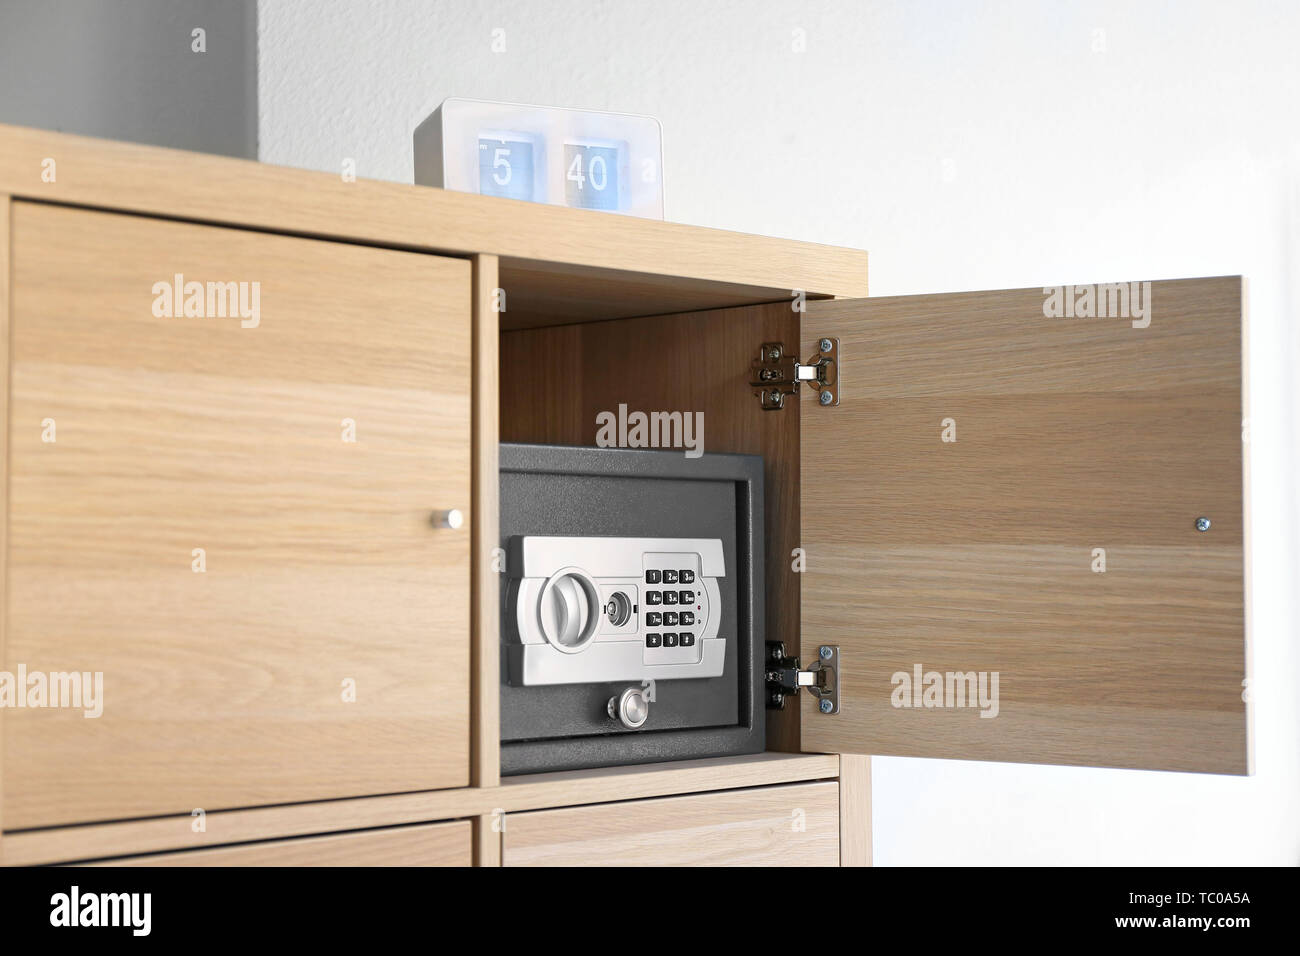 Modern Small Safe In Cabinet Stock Photo Alamy